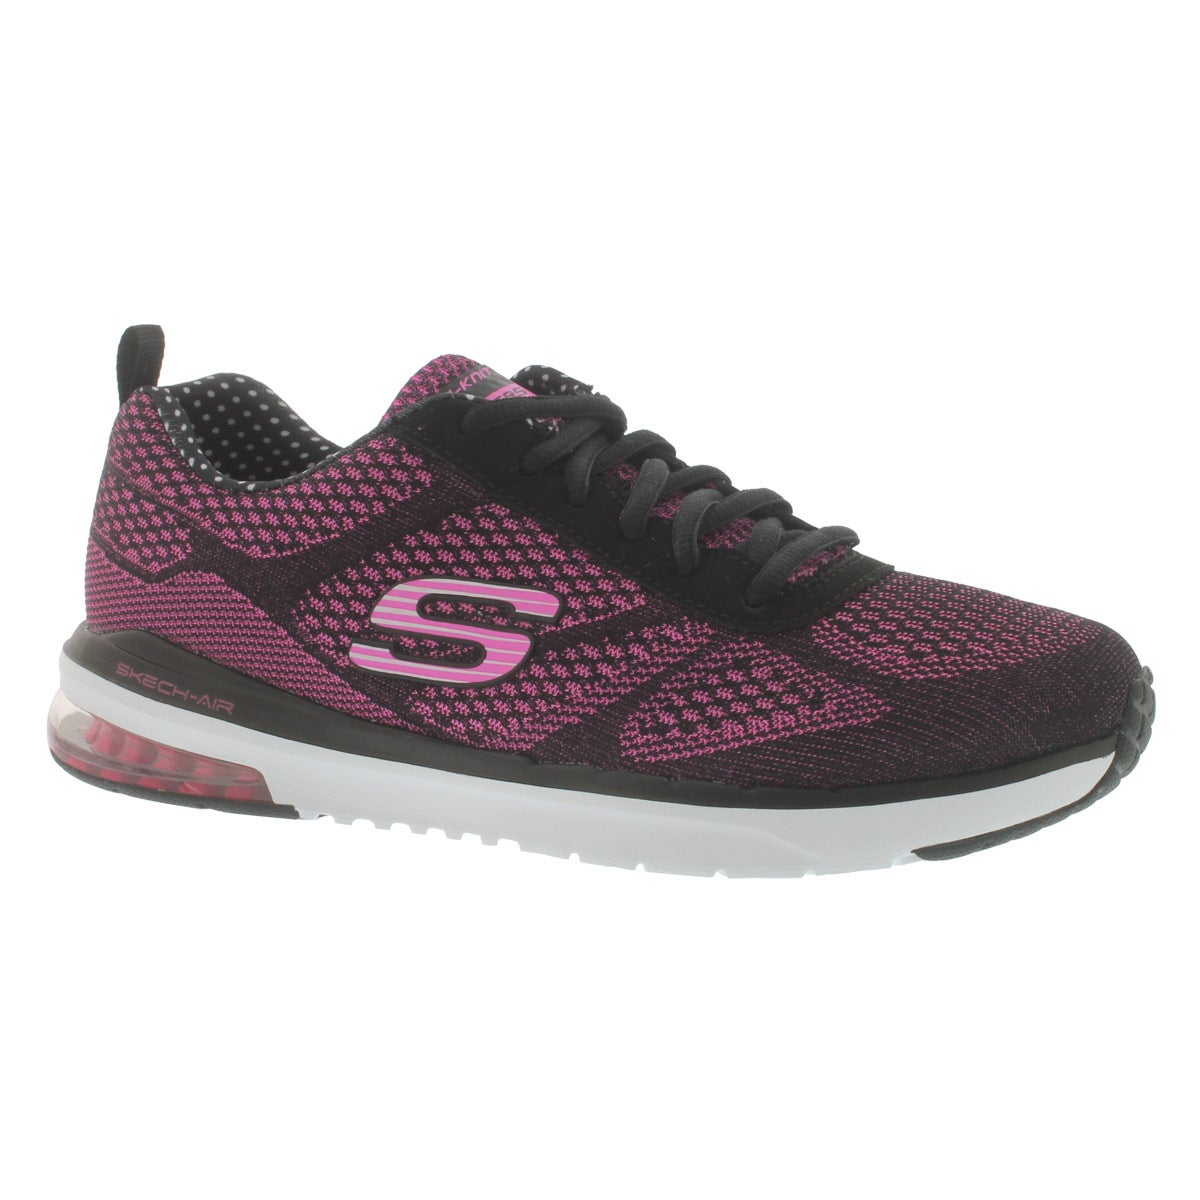 Women's SKECH-AIR INFINITY black/pink sneakers